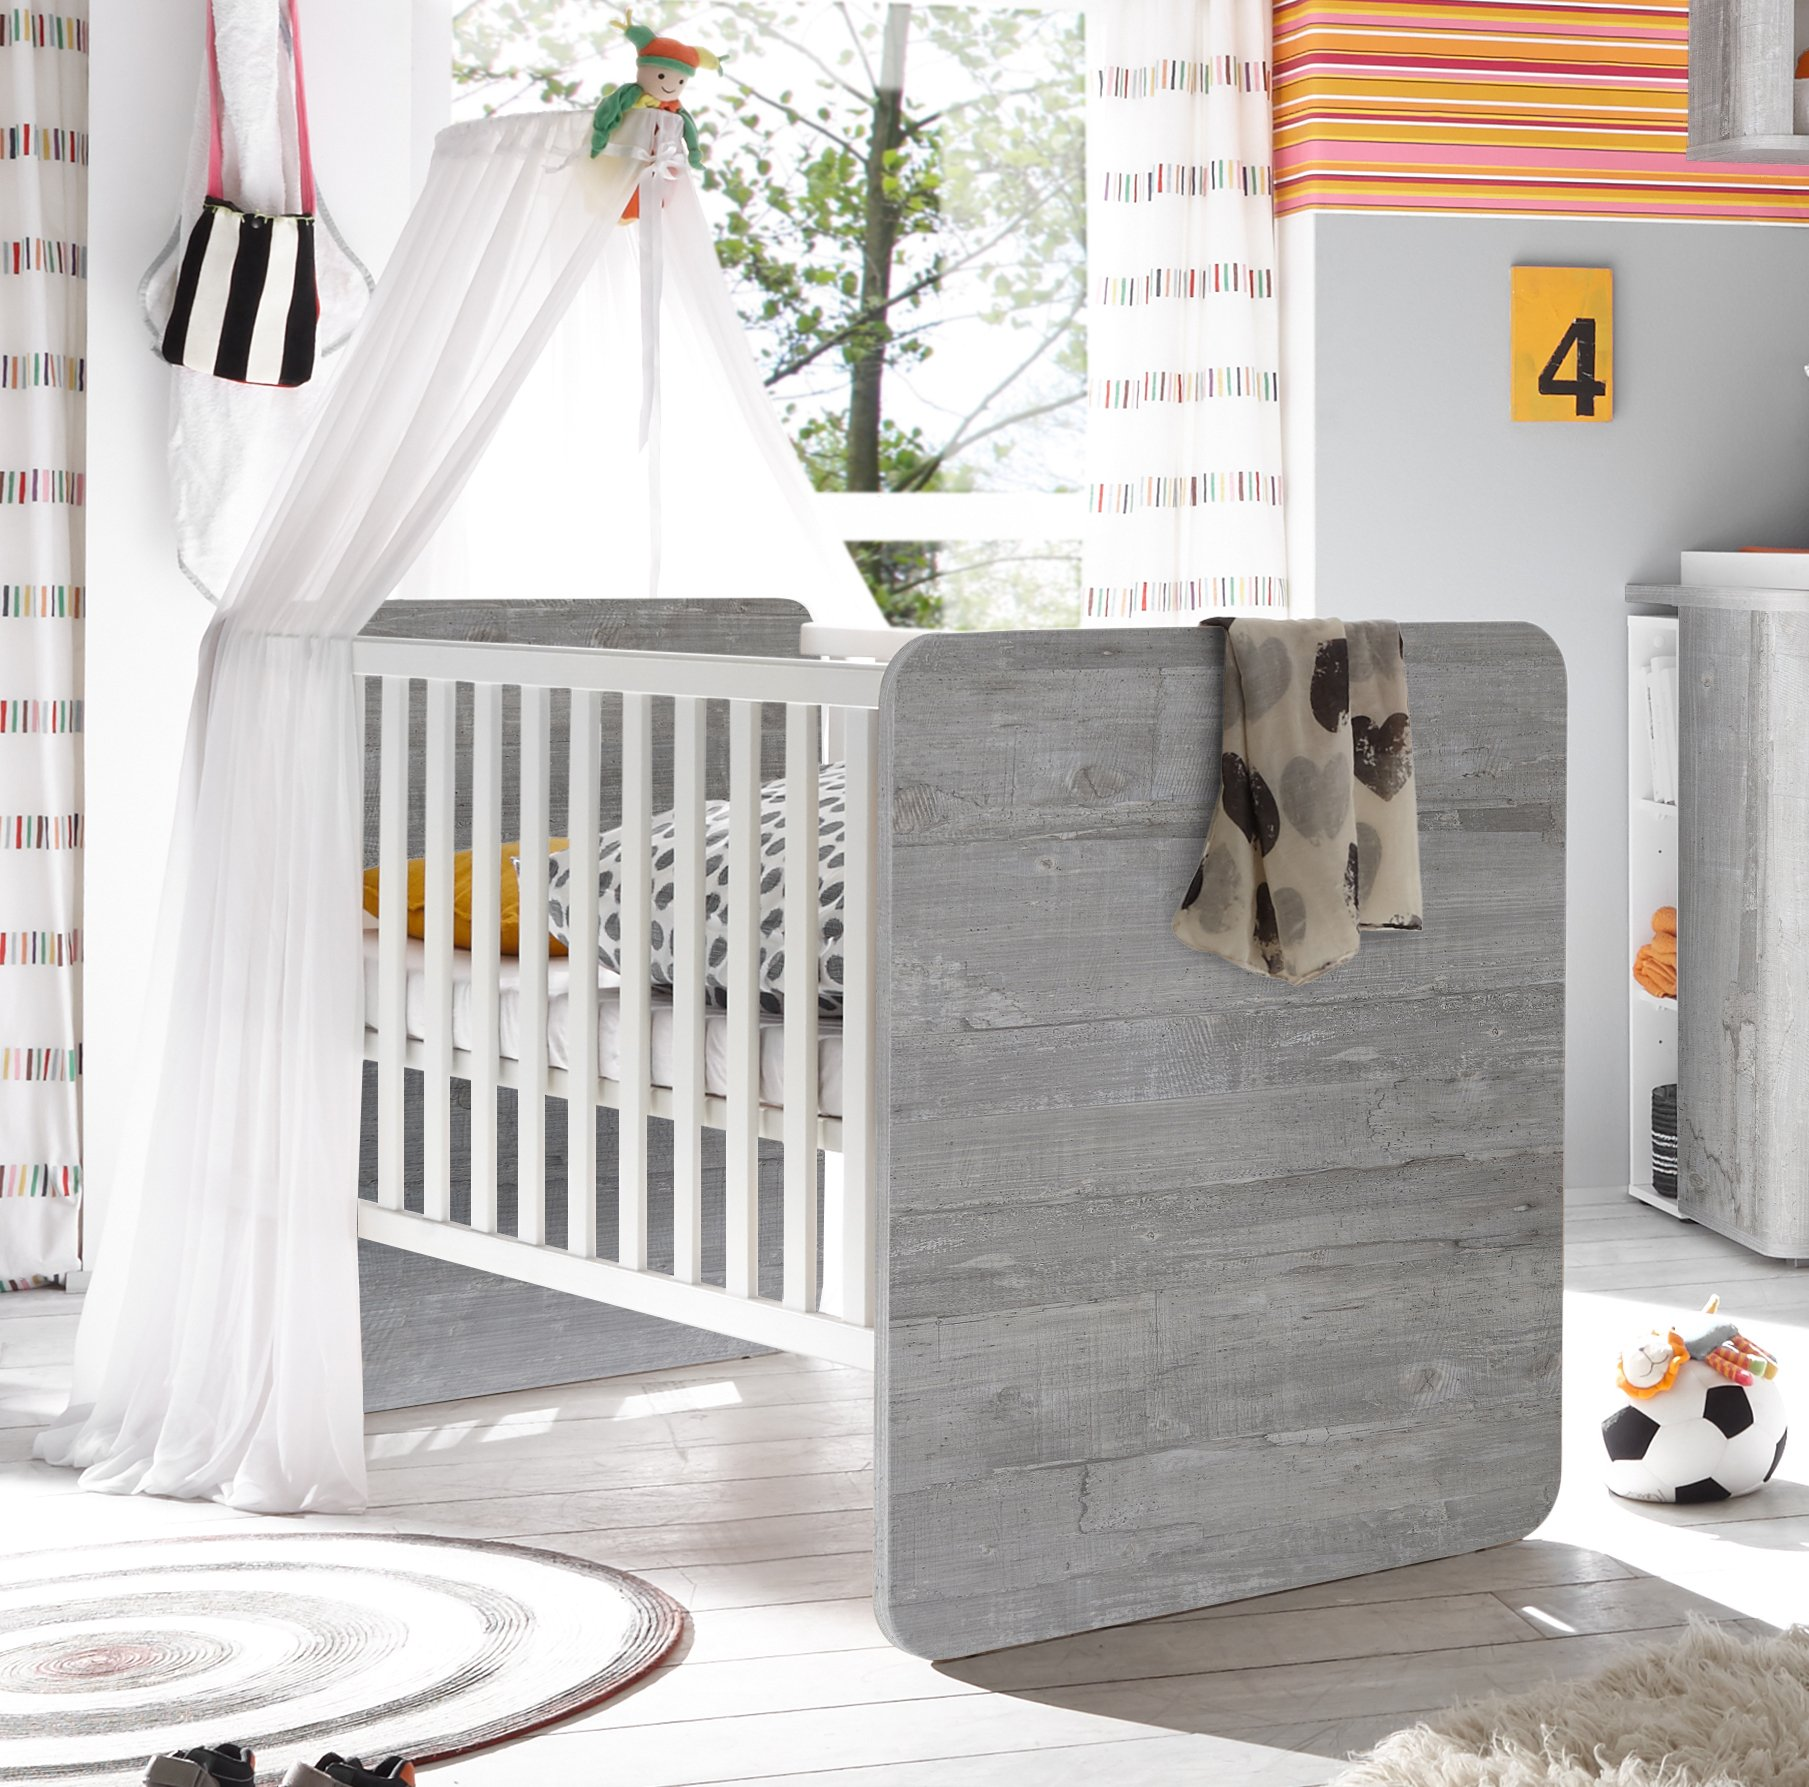 Babybett vintage wood grey / weiß matt